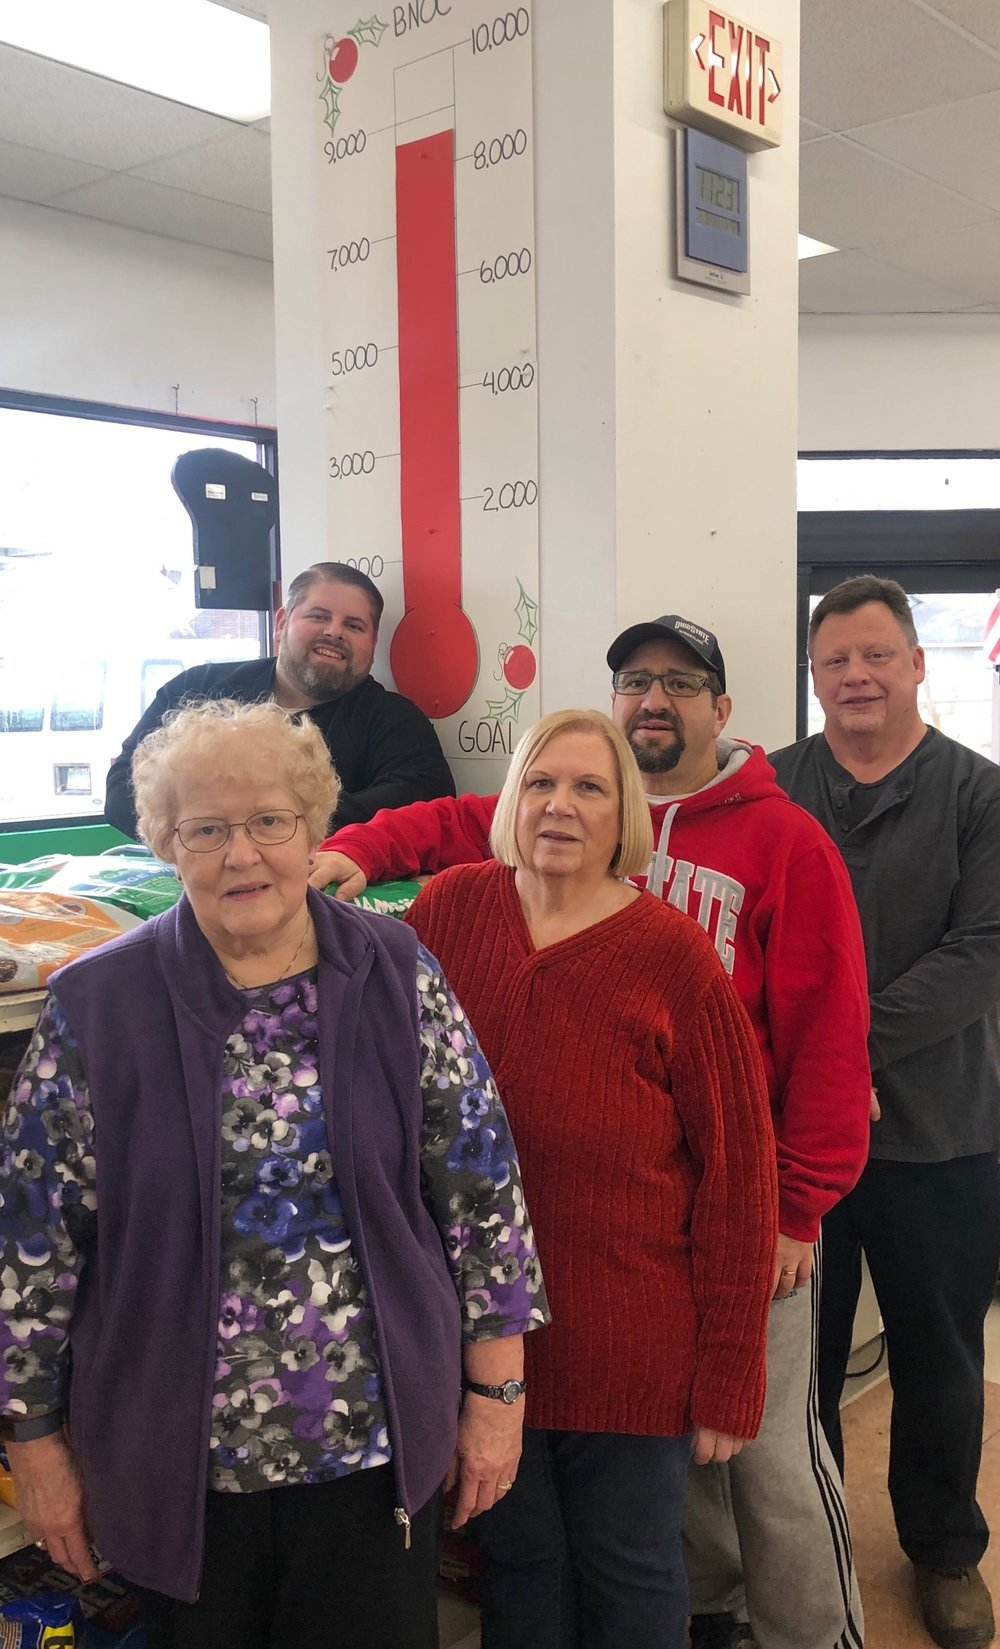 Pictured:  back left  - Jason Potes (owner of Stoodt's Market);  front row, left to right  - Carol Hoeflich (BNOC Food Pantry Manager), Charil Fuhrer (BNOC Clothesline Manager), Matt Merendino (BNOC President), and Dan Gradijan (a Stoodt's employee)